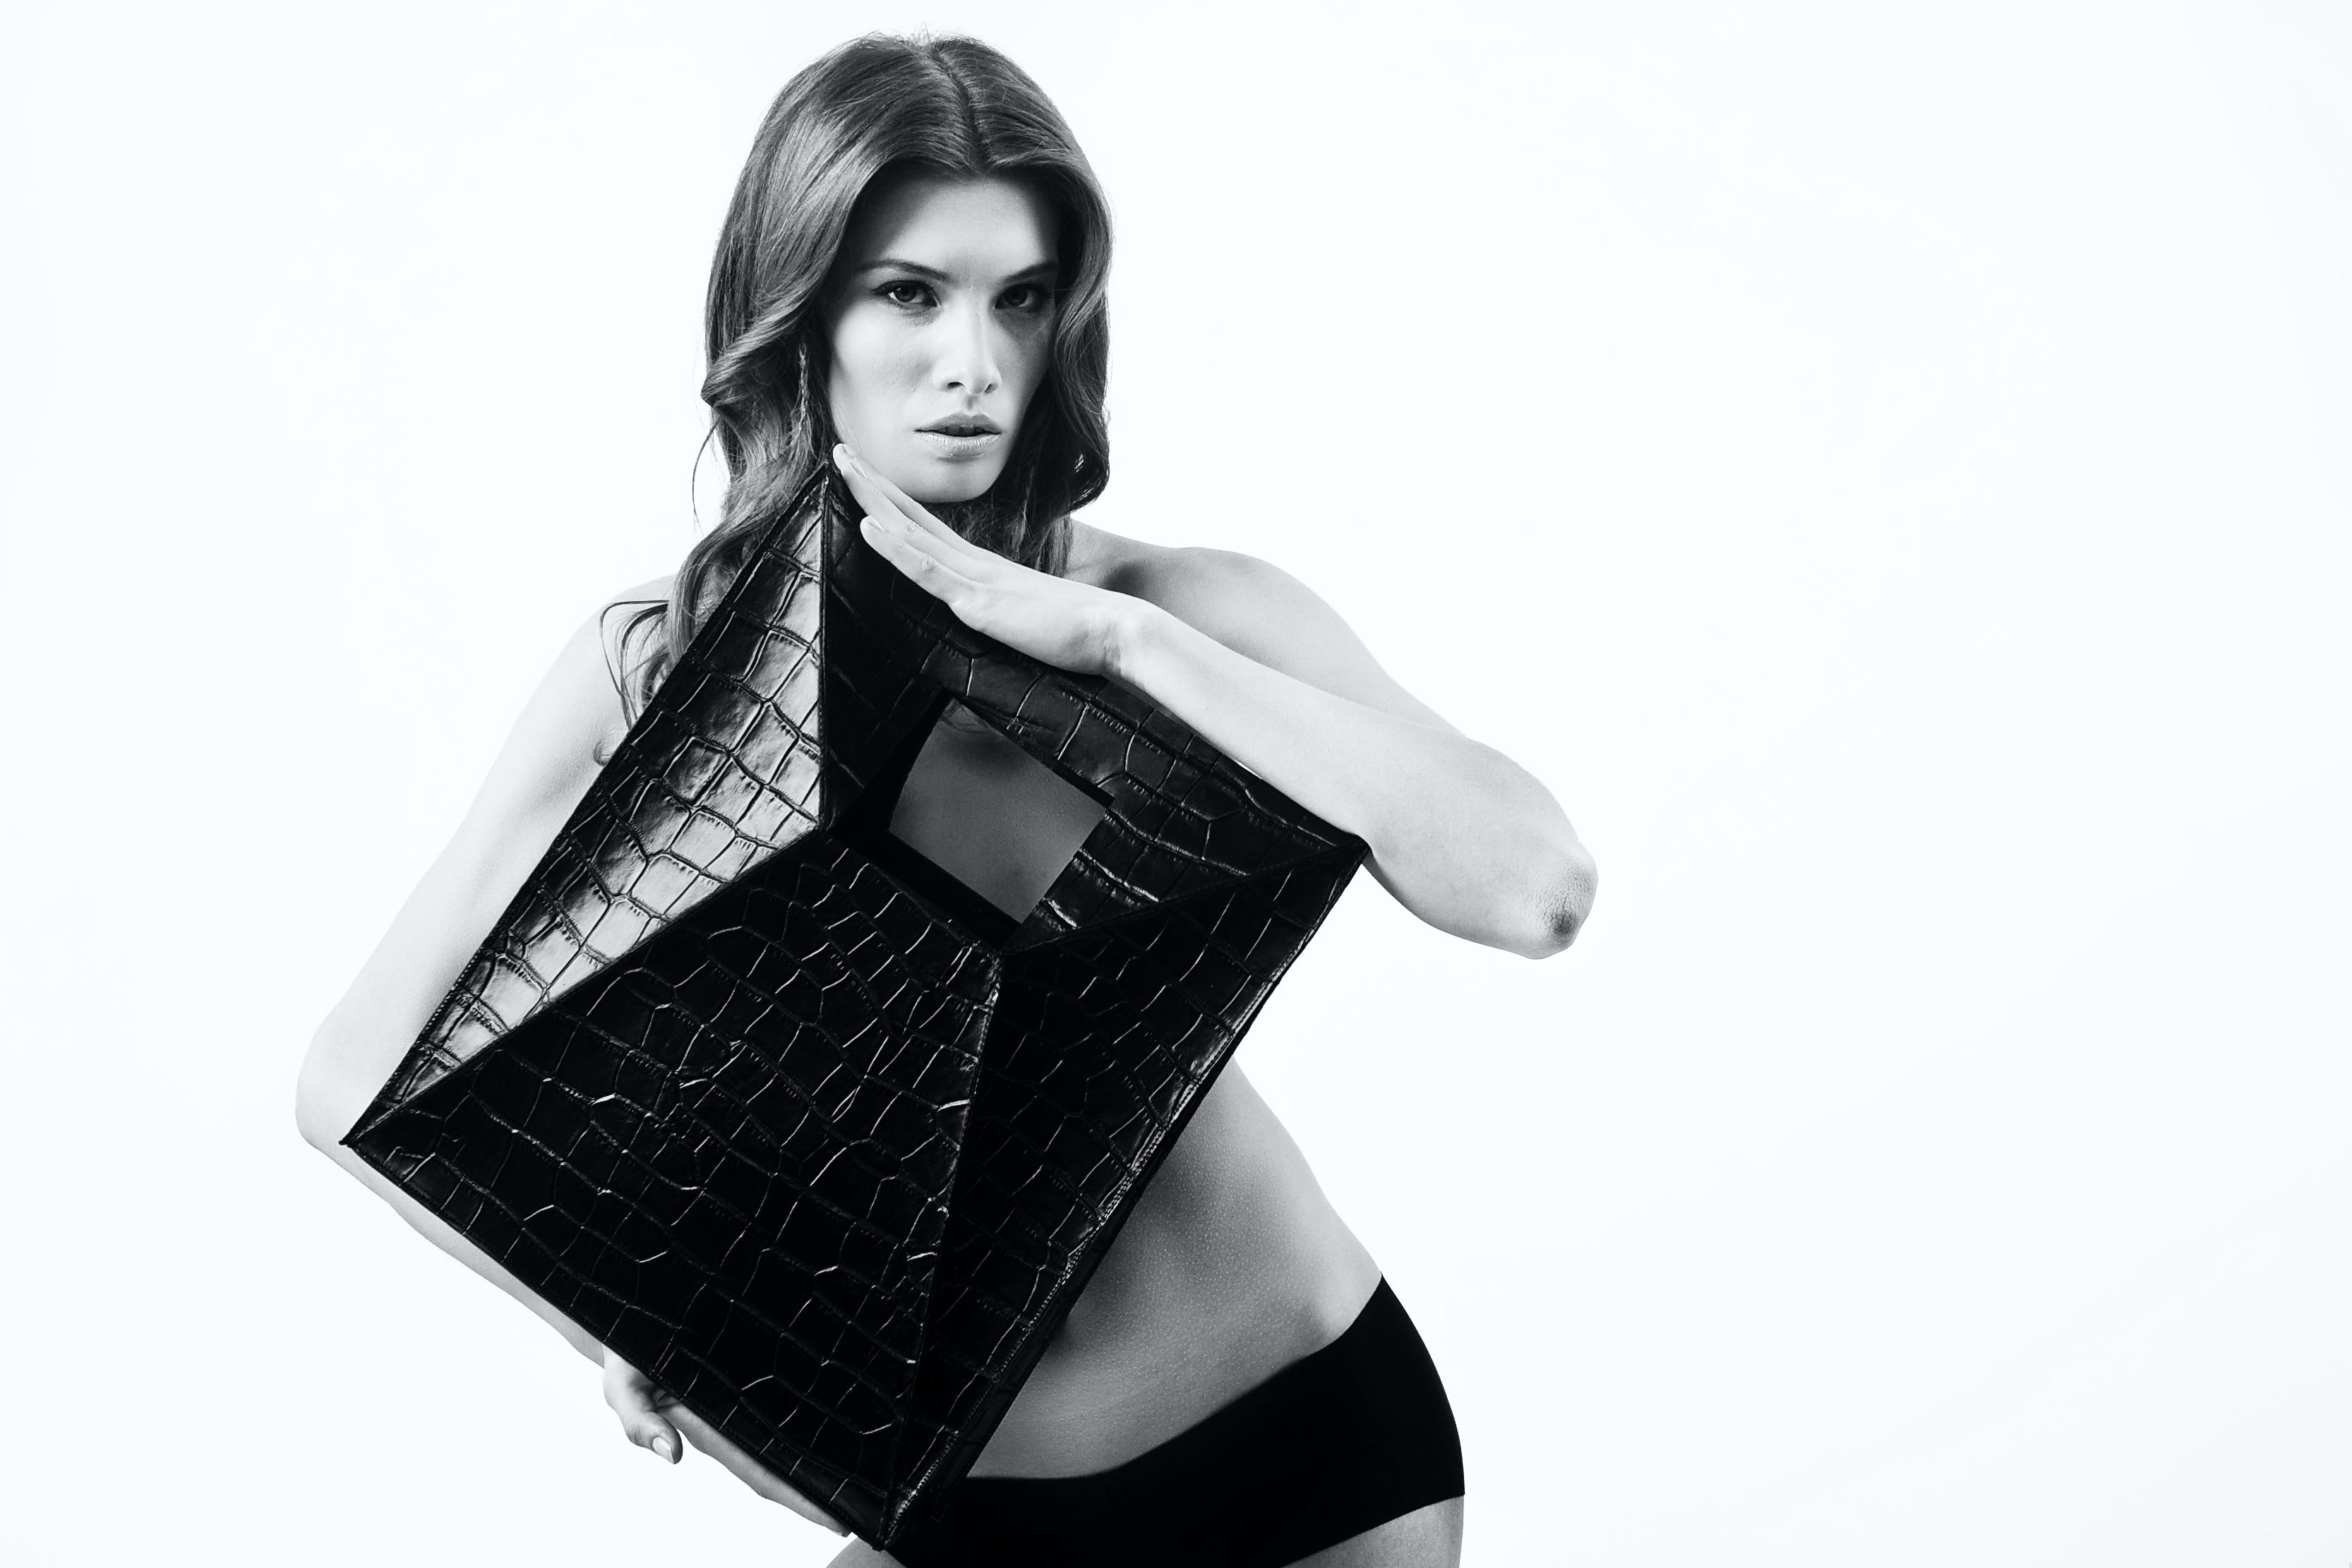 Greyscale Photography of Woman Holding Leather Square Covering Her Upper Body